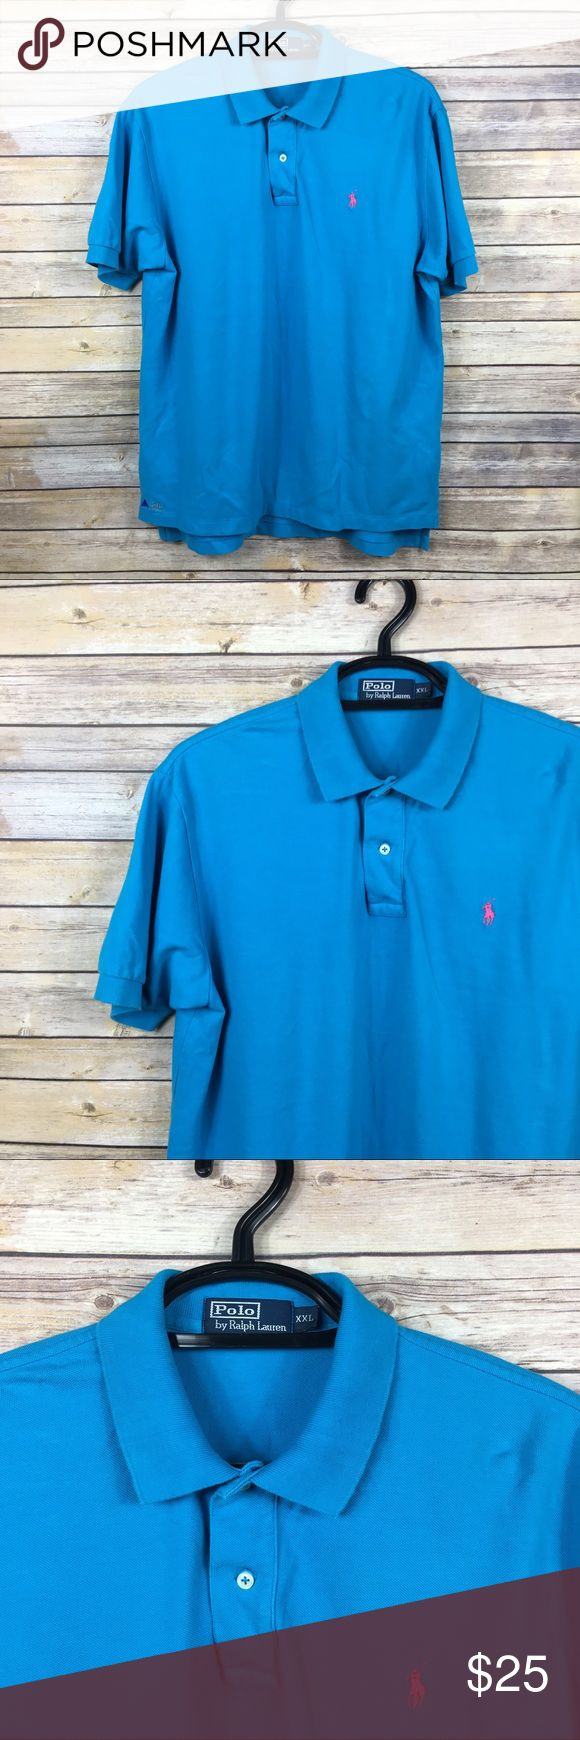 Polo Ralph Lauren Blue Embroidered Polo Shirt XXL Polo Ralph Lauren Embroidered Blue  Polo Shirt Size XXL  Embroidered Ralph Lauren Logo Embroidered Lam Research on front bottom  Armpit to armpit 25 in Armpit to end of sleeve 5 in Shoulder to back hem 31 in Thanks for visiting! Polo by Ralph Lauren Shirts Polos